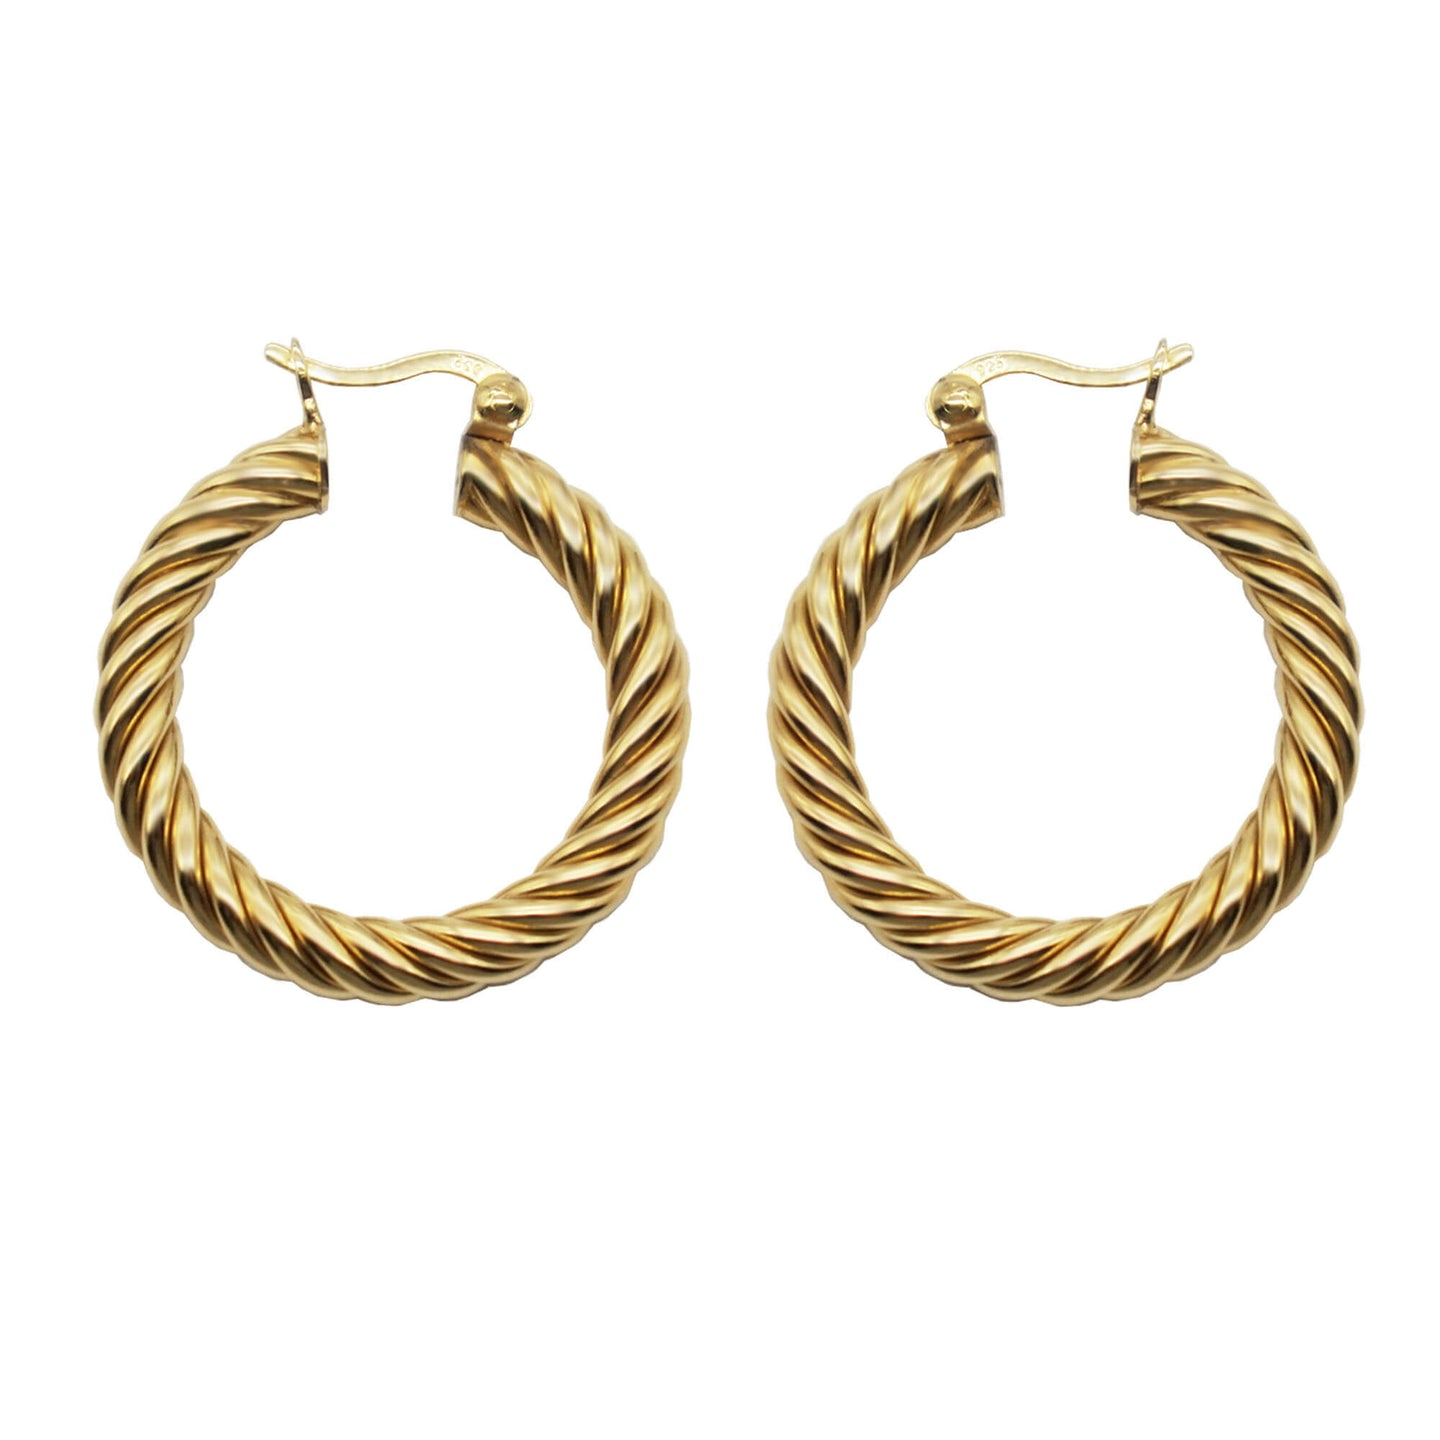 PAWNSHOP GOLD PLATED STERLING SILVER TWISTED HOOPS WITH A WHITE BACKGROUND